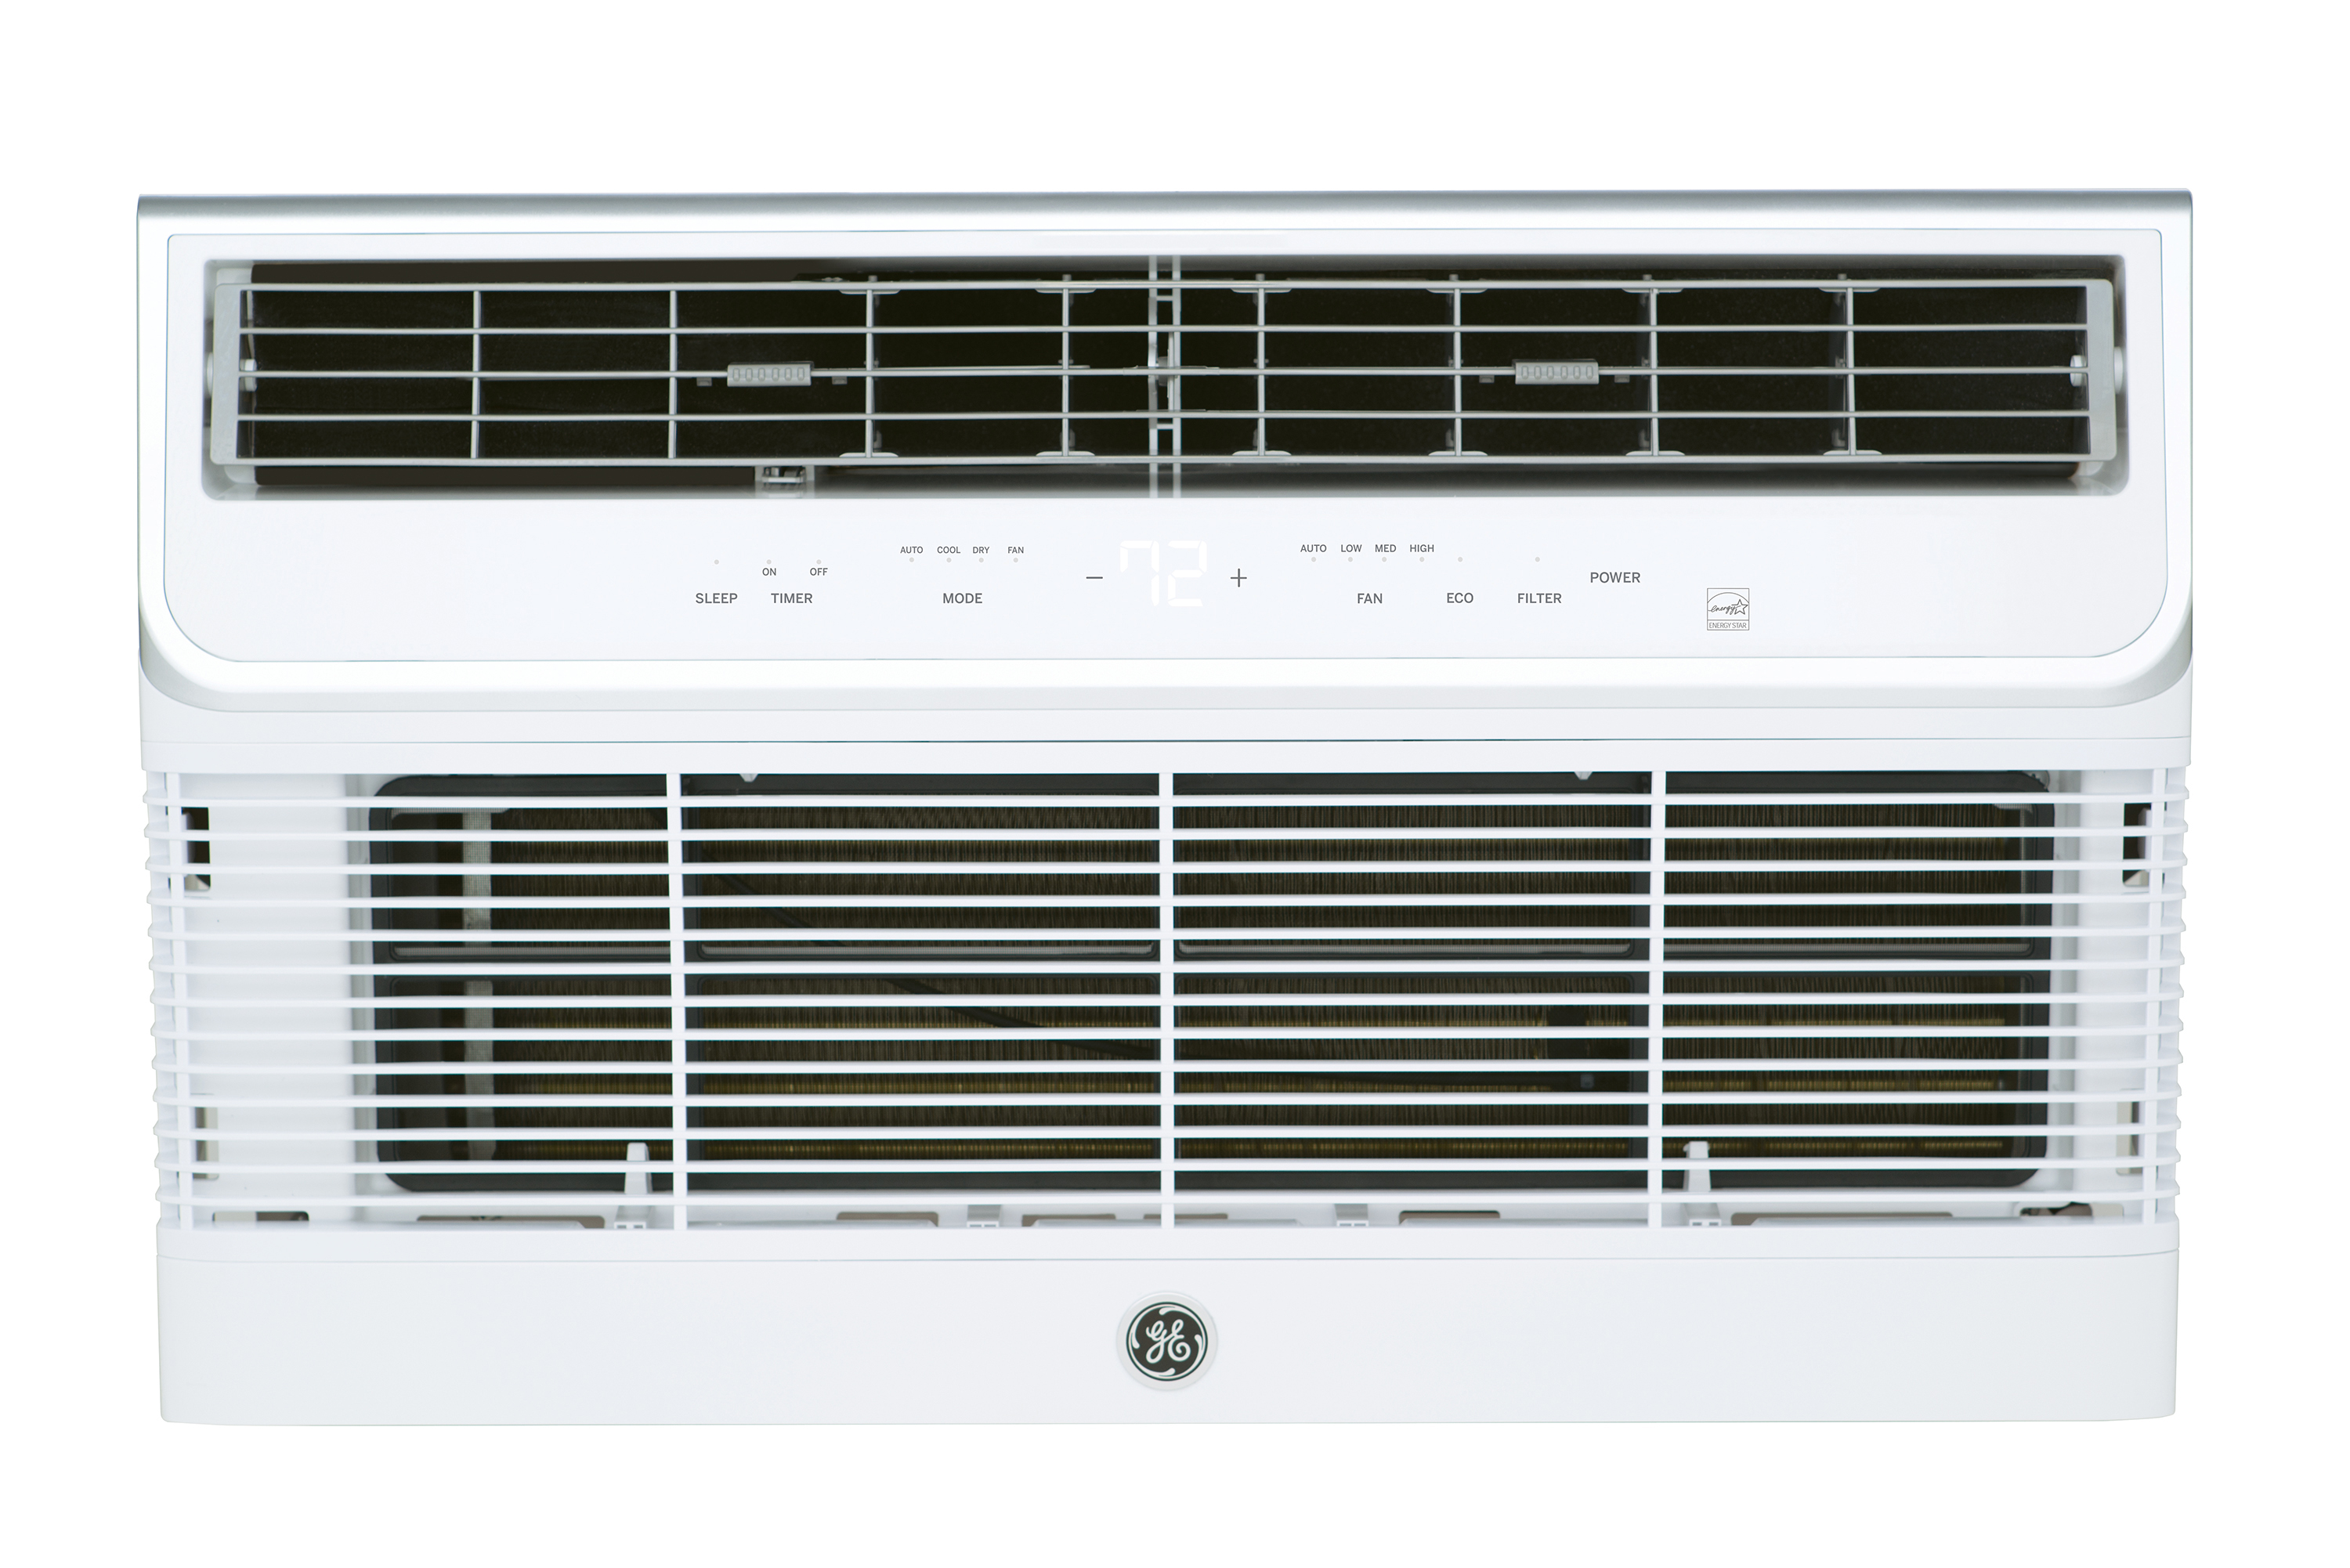 General Electric AJCQ10ACH 10000 BTU Through-the-Wall Room Air Conditioner - 115V - Energy Star